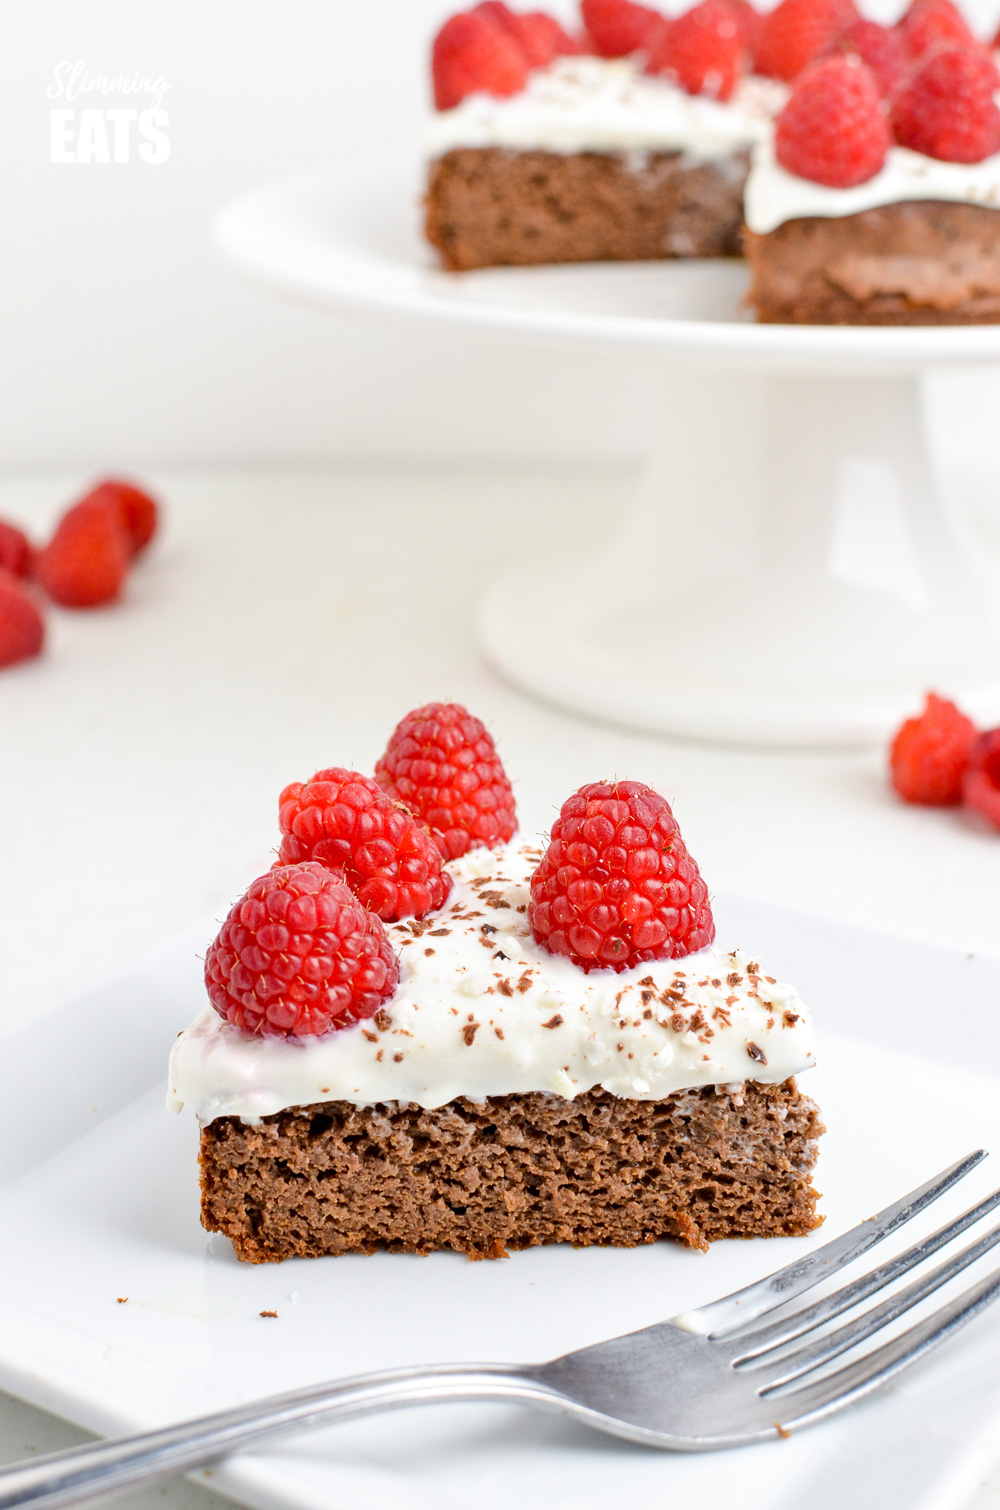 Raspberry Topped Chocolate Scan Bran Cake slice on white plate with fork